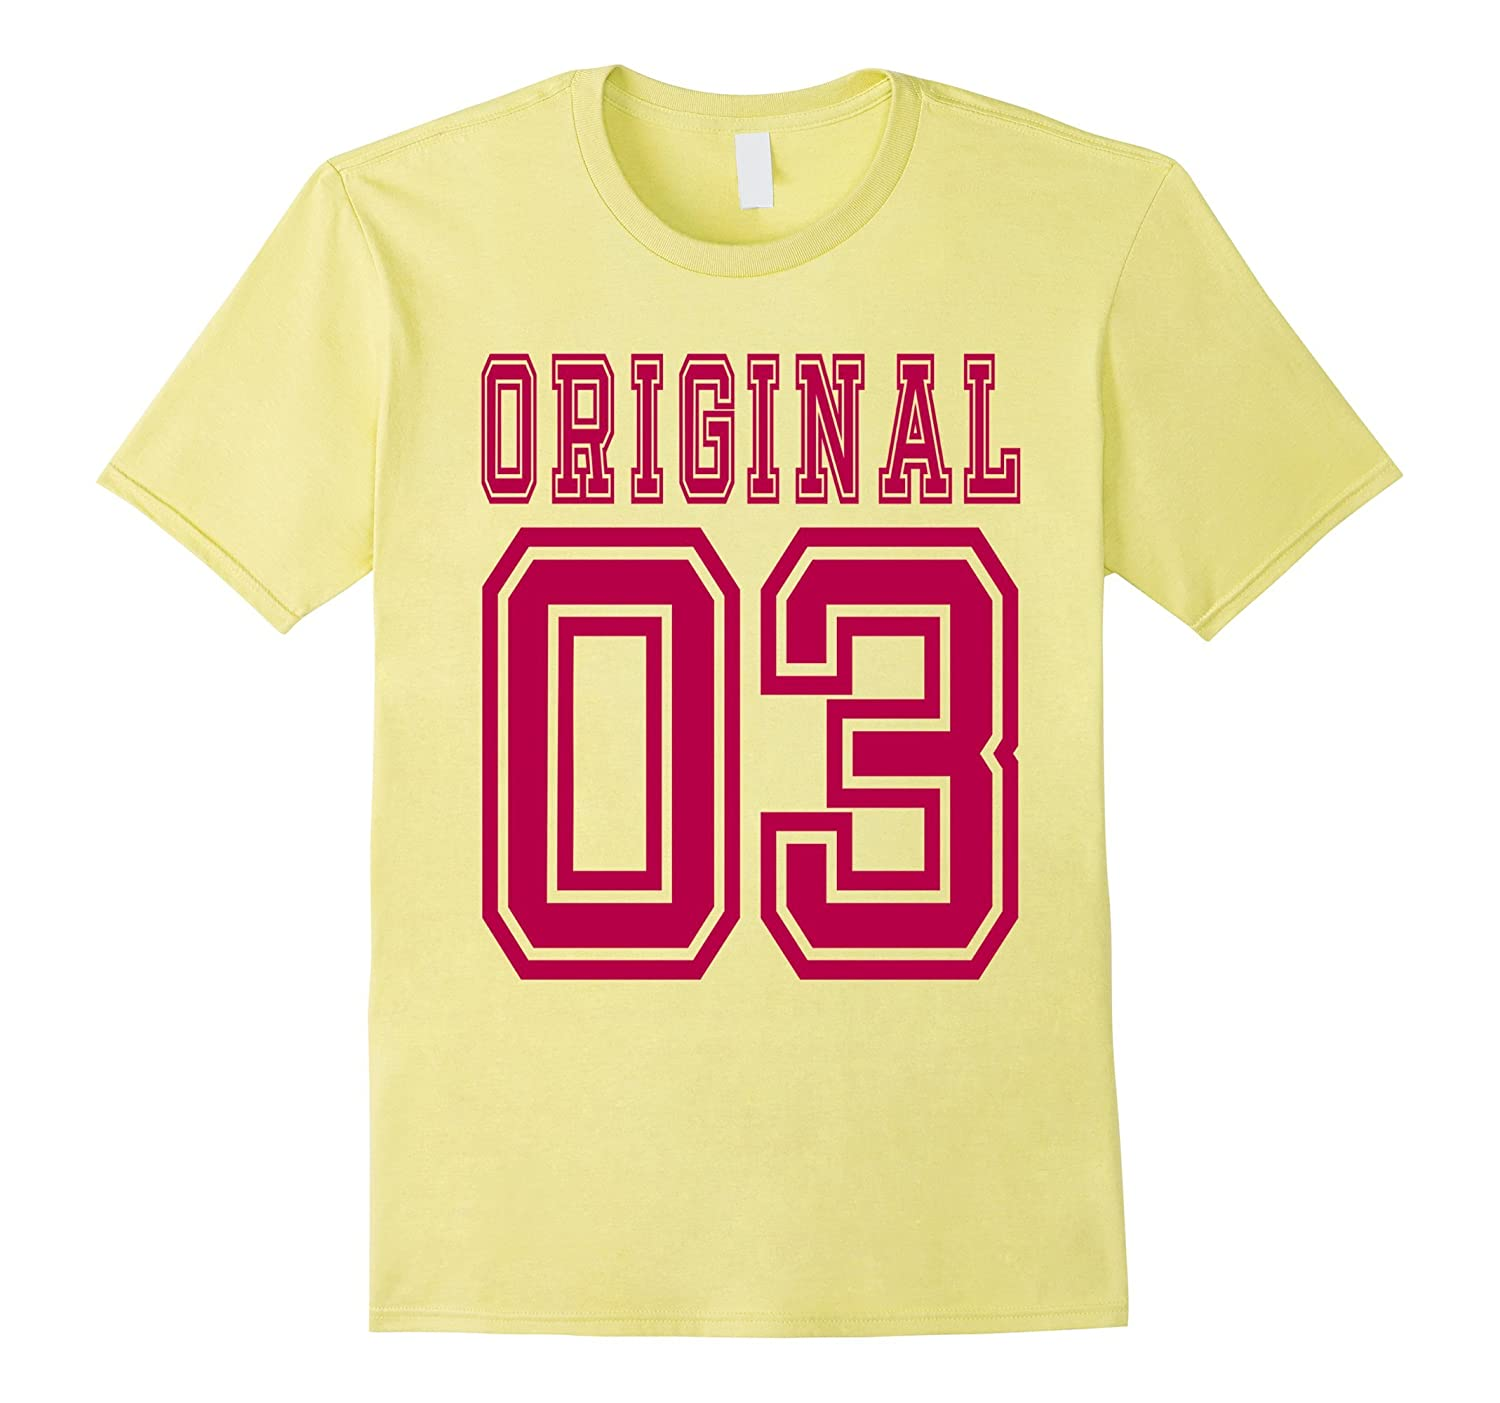 13th Birthday Gift Idea 13 Year Old Girl Shirt 2003 Tee C BN